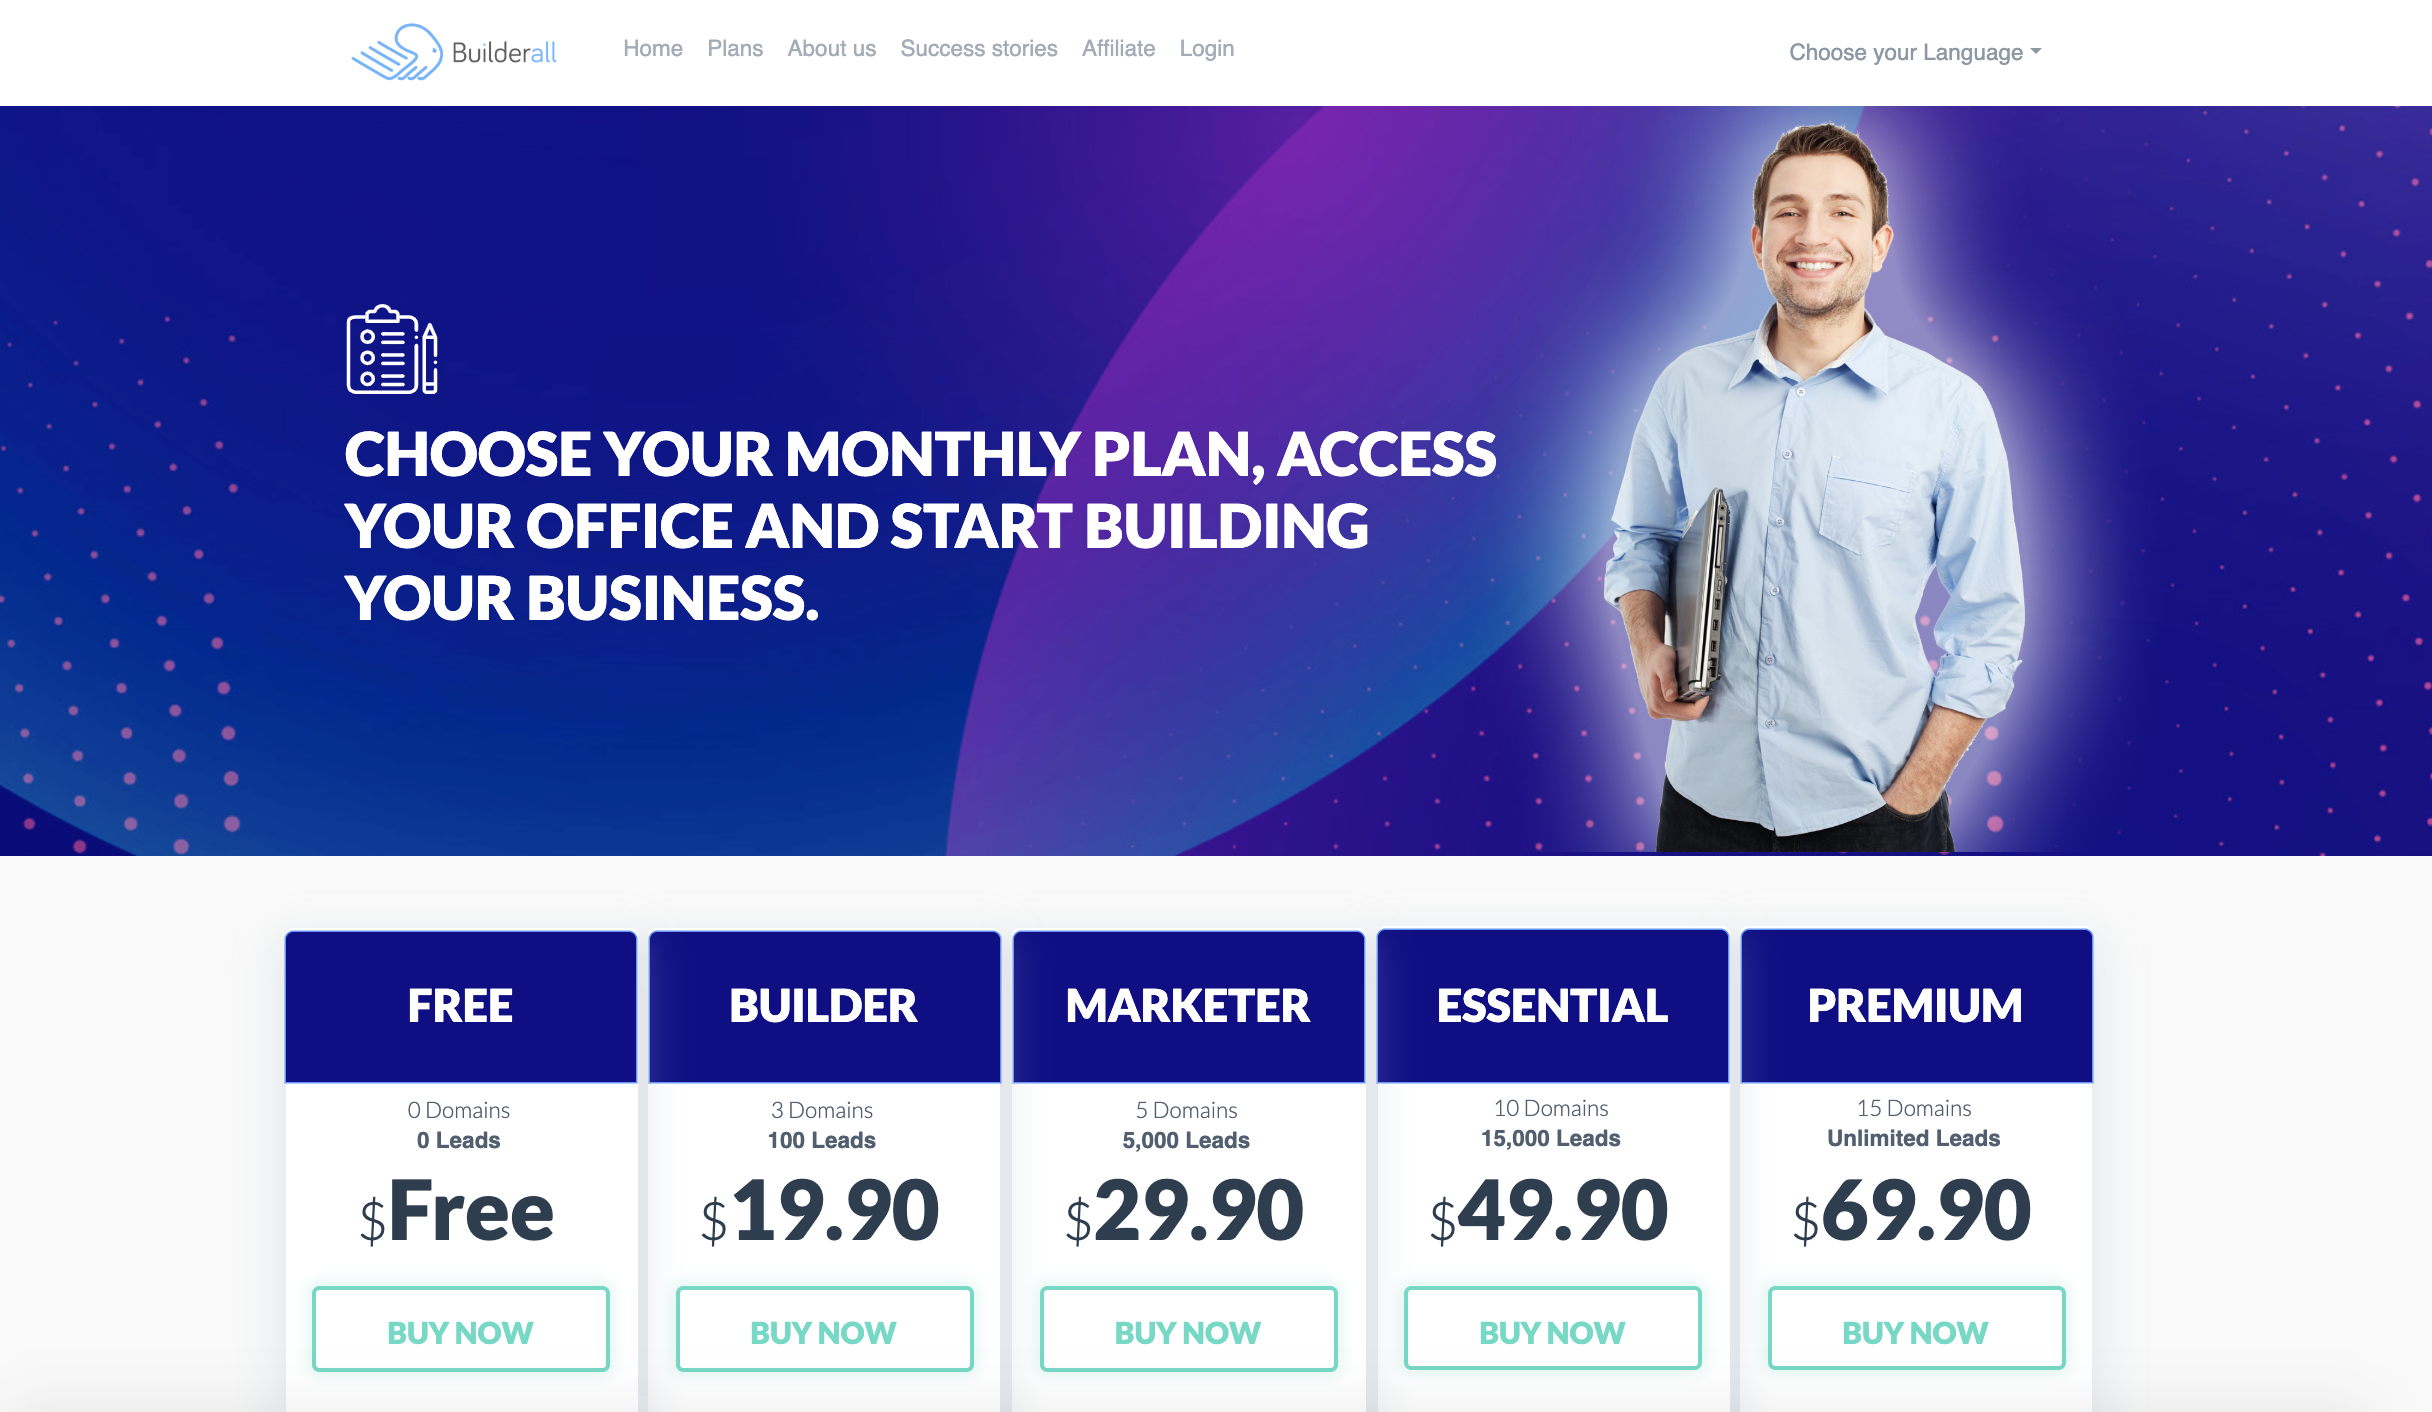 Builderall all-in-one digital business platform